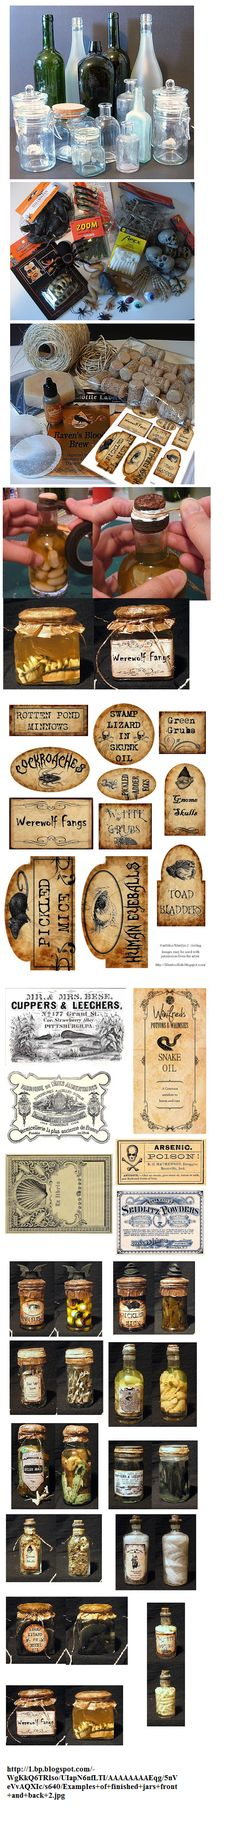 examples of apothecary jars & labels Halloween decor Halloween Prop, Soirée Halloween, Halloween Potions, Halloween Bottles, Halloween Labels, Halloween Projects, Diy Halloween Decorations, Holidays Halloween, Halloween Forum